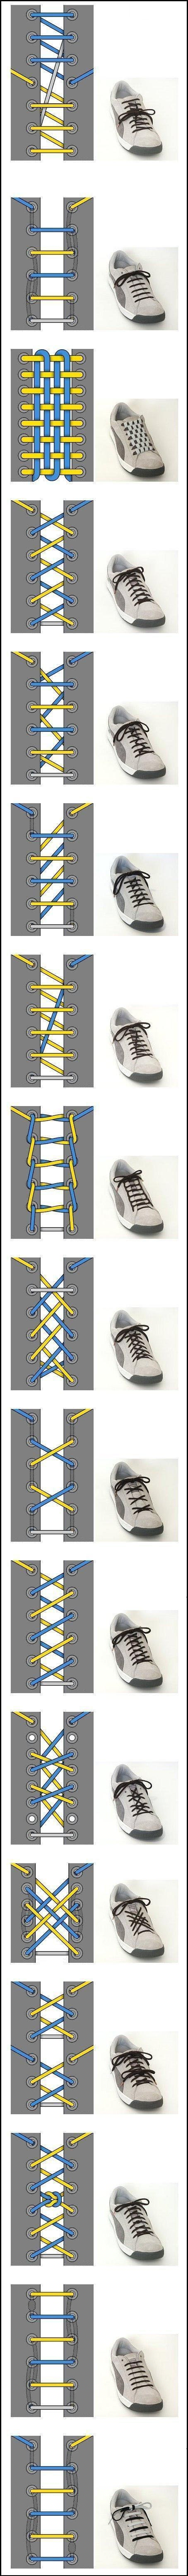 cool ways to lace your tennis! I remember when I would try this in middle school